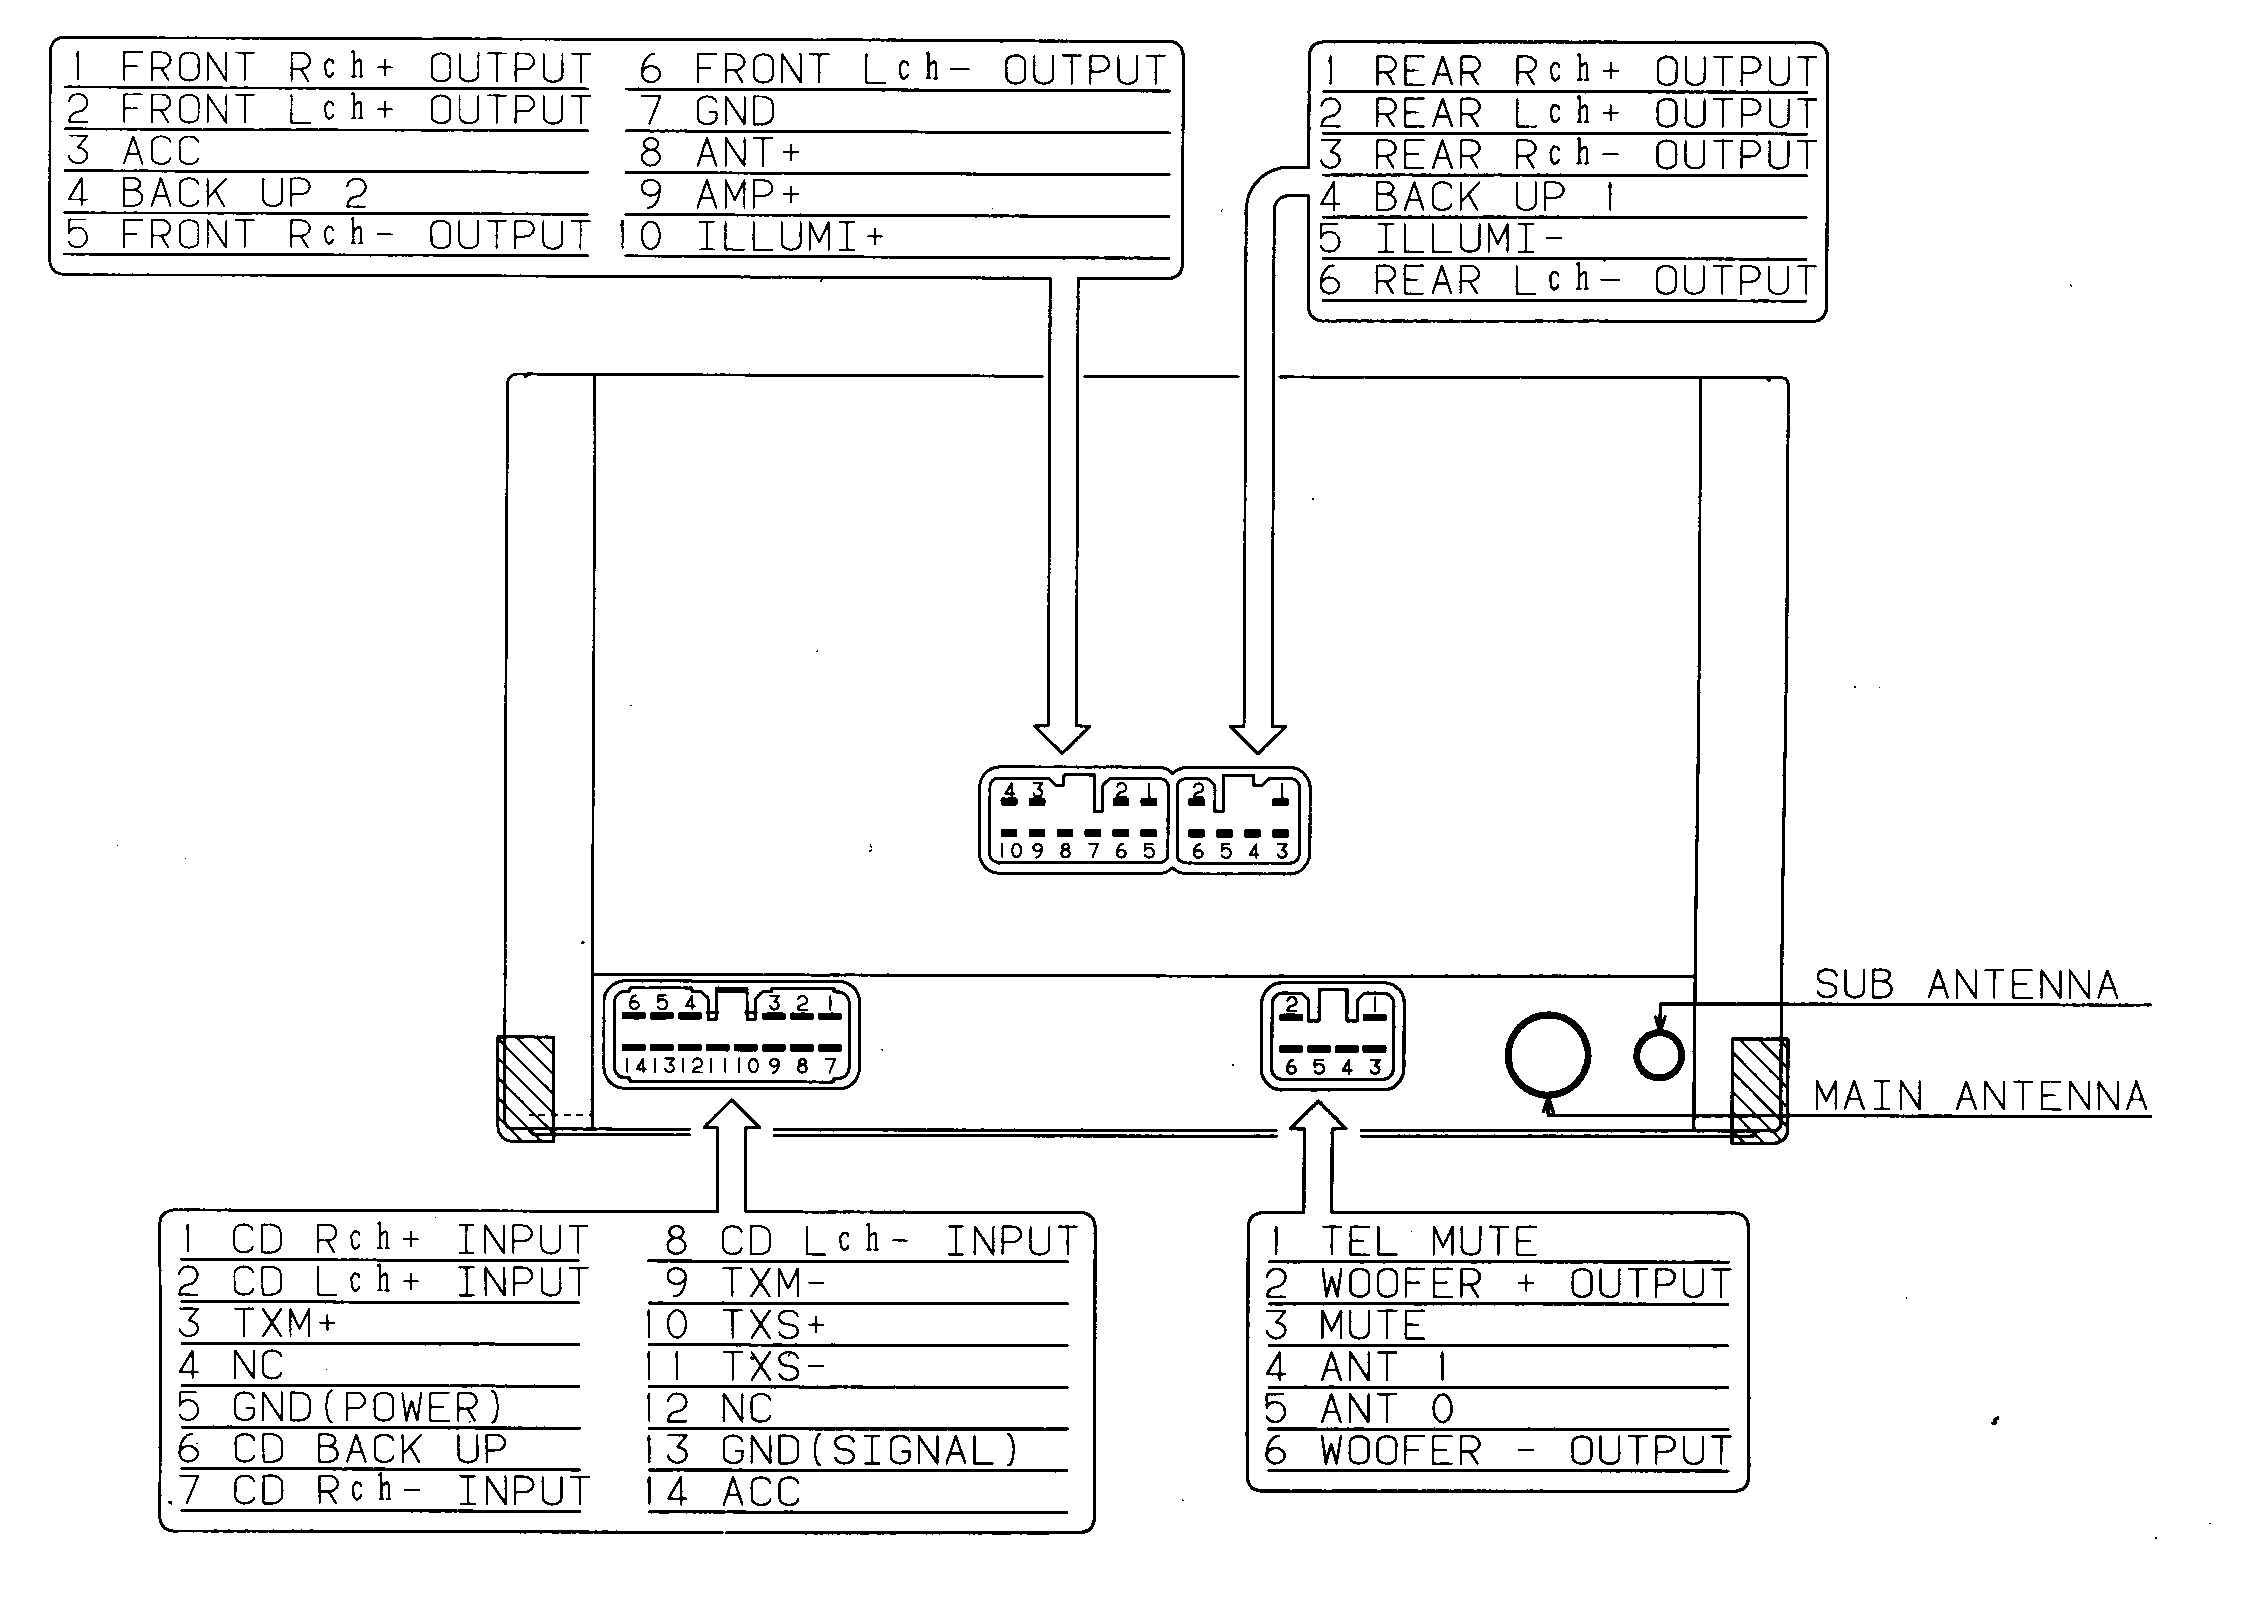 Lexus car stereo wiring diagram harness pinout connector wire lexus car radio stereo audio wiring diagram autoradio connector fujitsu ten car stereo wiring diagram at mifinder.co